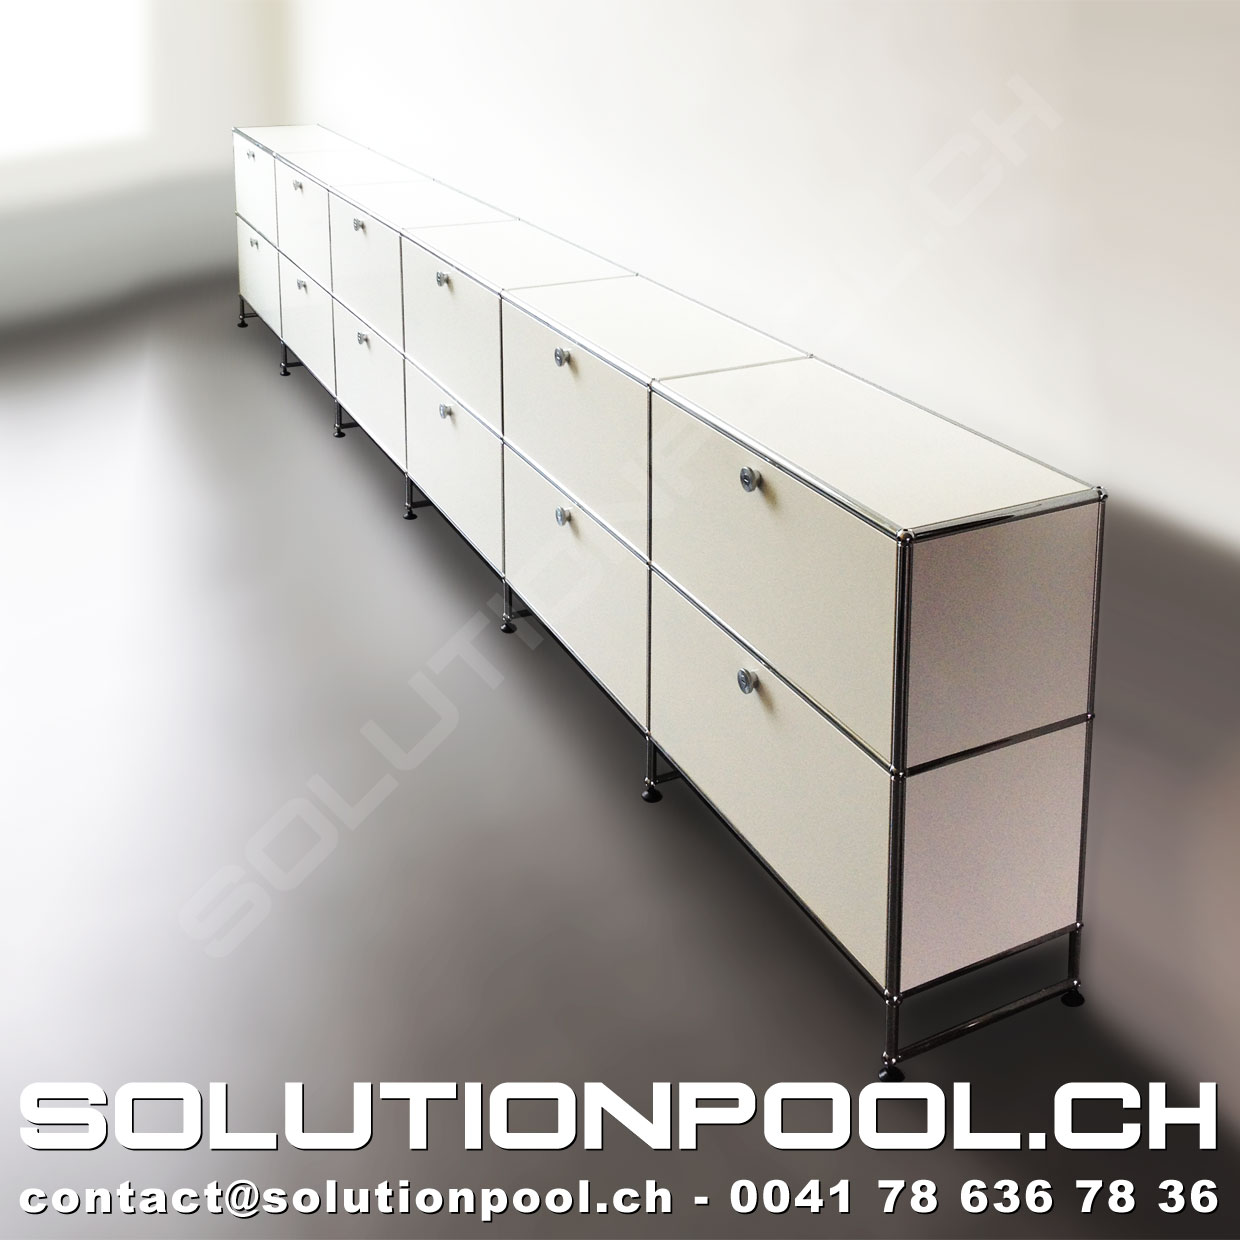 usm sideboard weiss 6 klappe 6 auszug solutionpool first class second hand for home and office. Black Bedroom Furniture Sets. Home Design Ideas